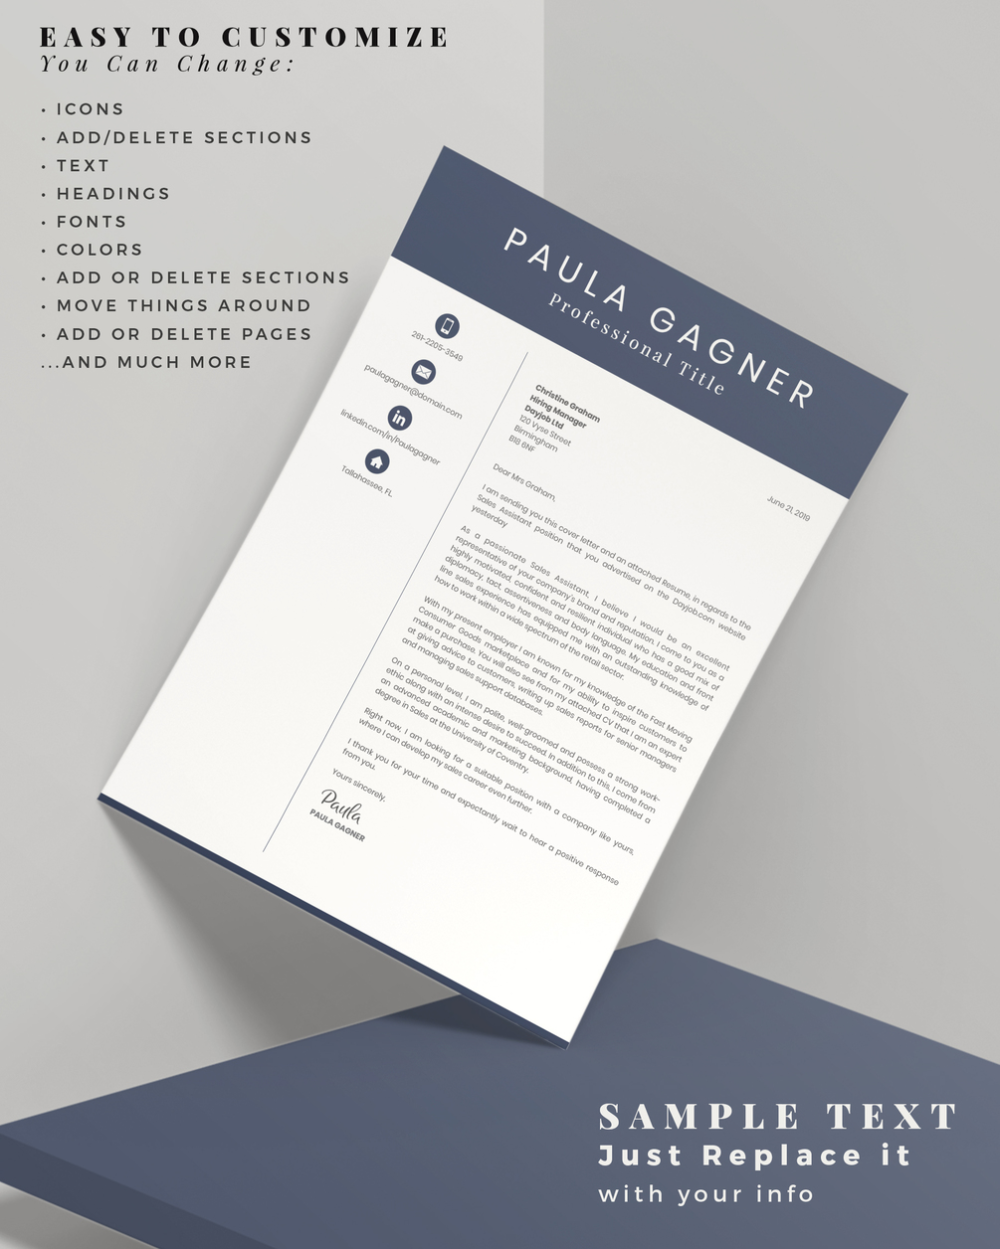 R49 Paula Gagner Accountant Resume Professional Resume Format For Microsoft Word Pages Resume Cv Design Free Cover Letter Format And References R Cover Letter Format Resume Template Resume Template Professional